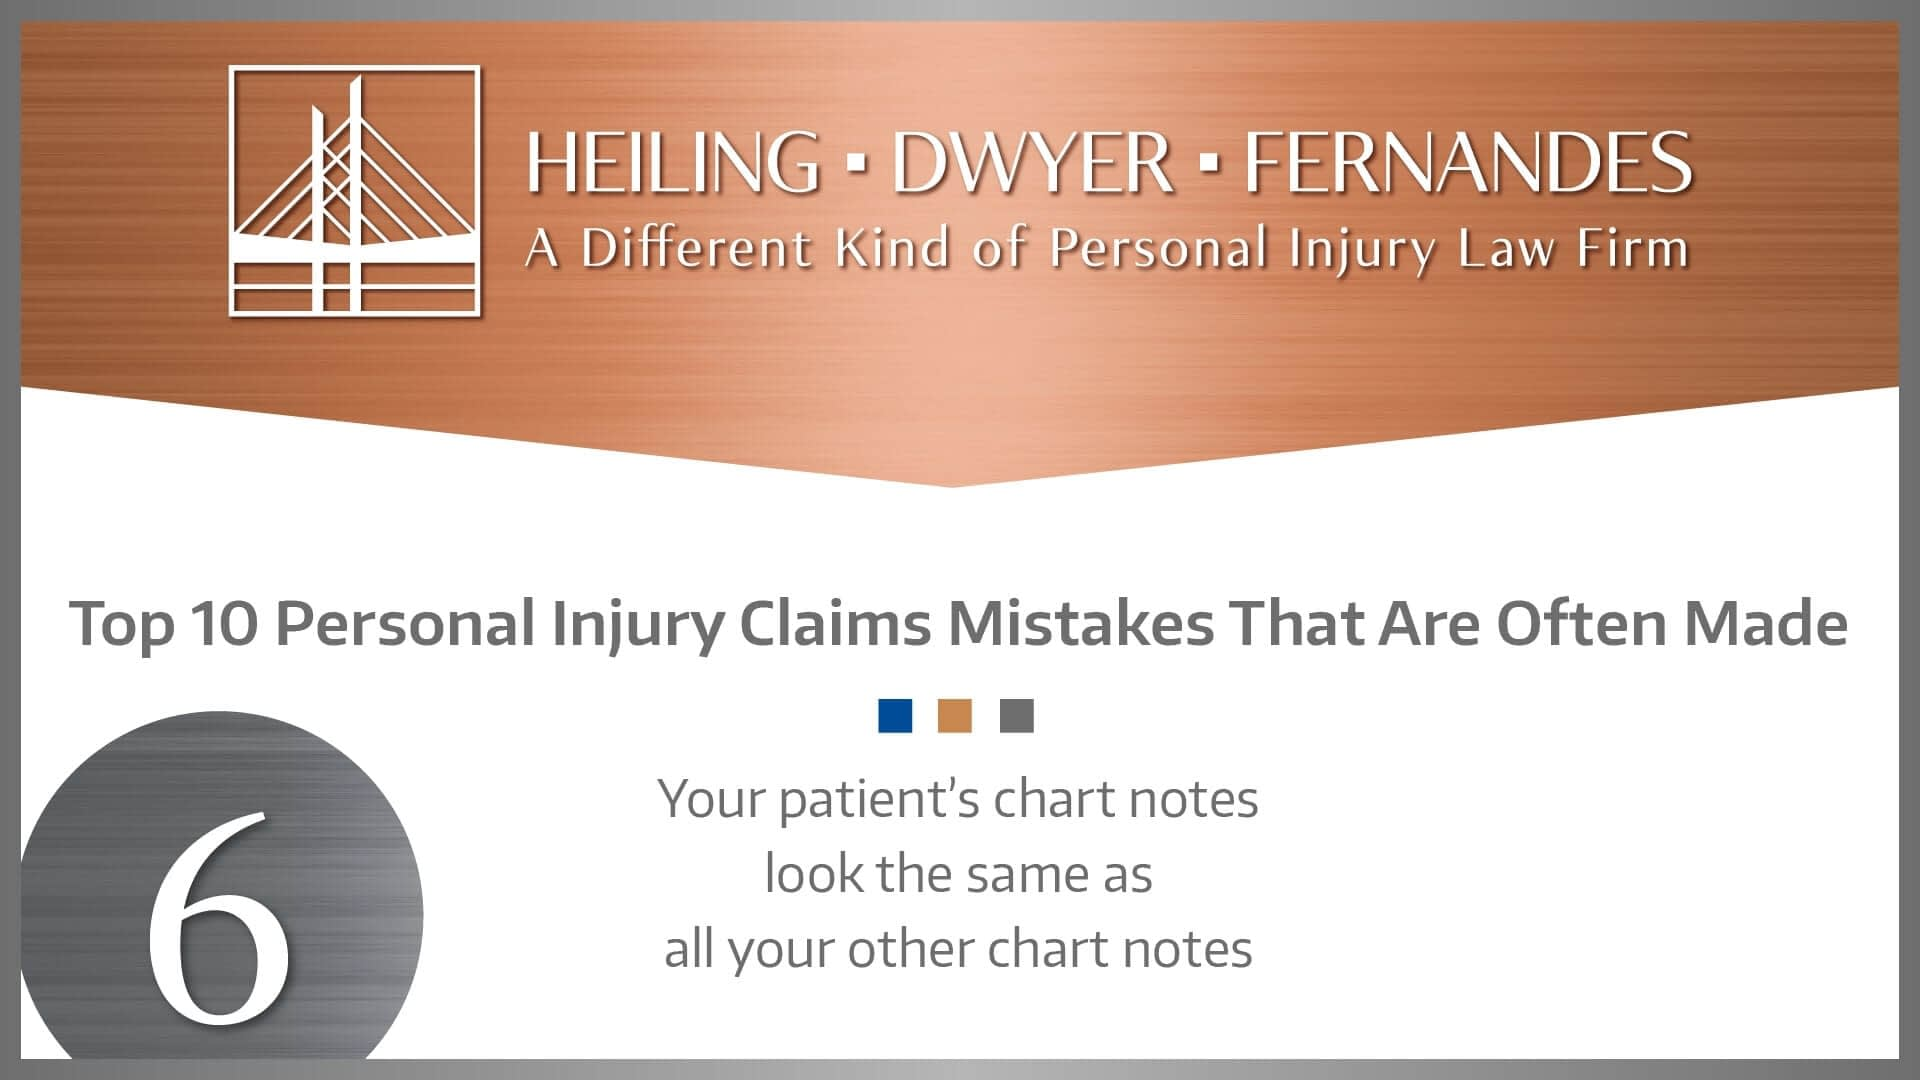 #6 MISTAKE: Your patient's chart notes look the same as all your other chart notes